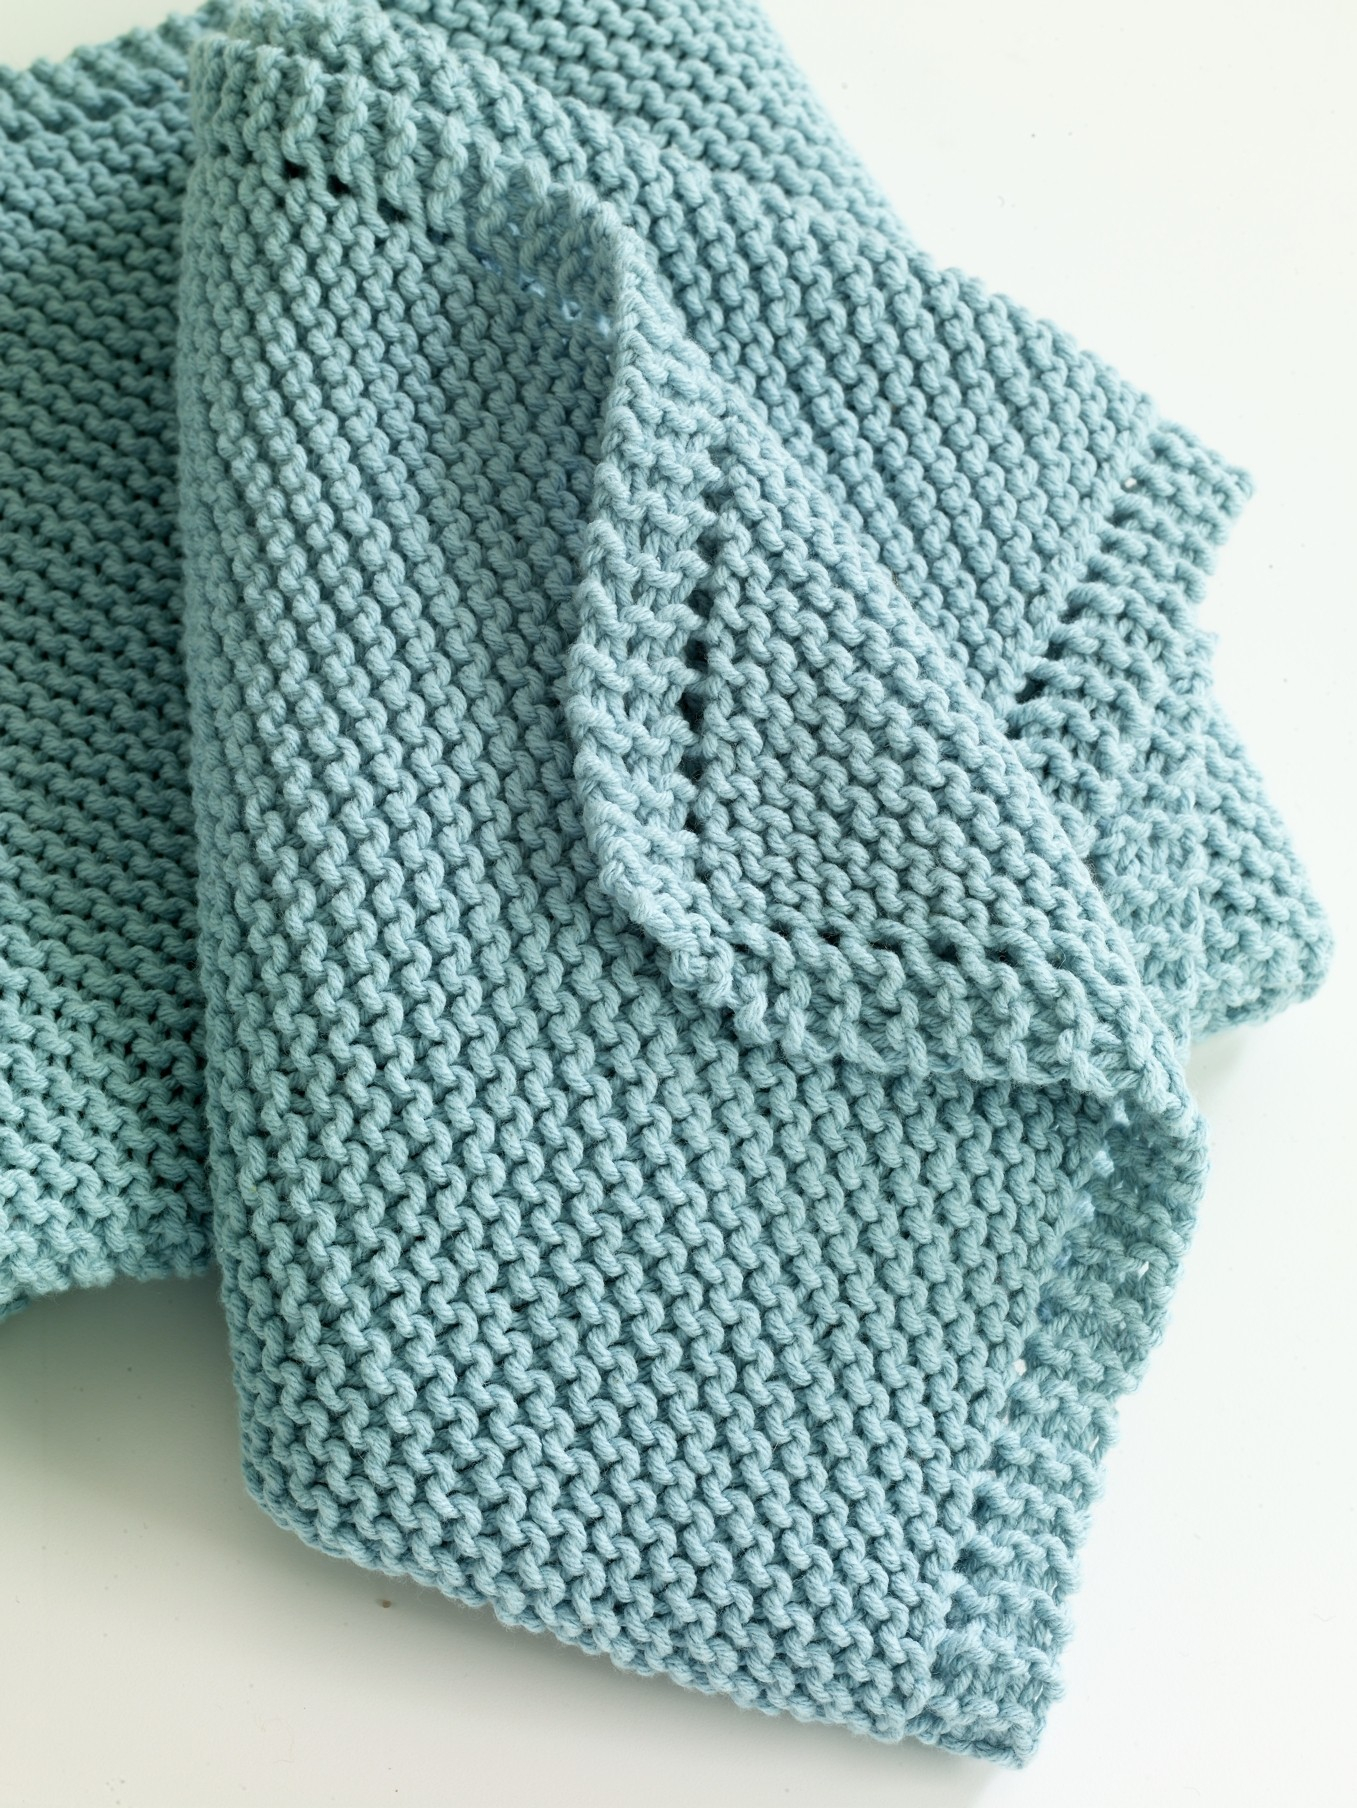 Knitting Patterns For Baby Blankets Easy Blankets Threadsnstitches